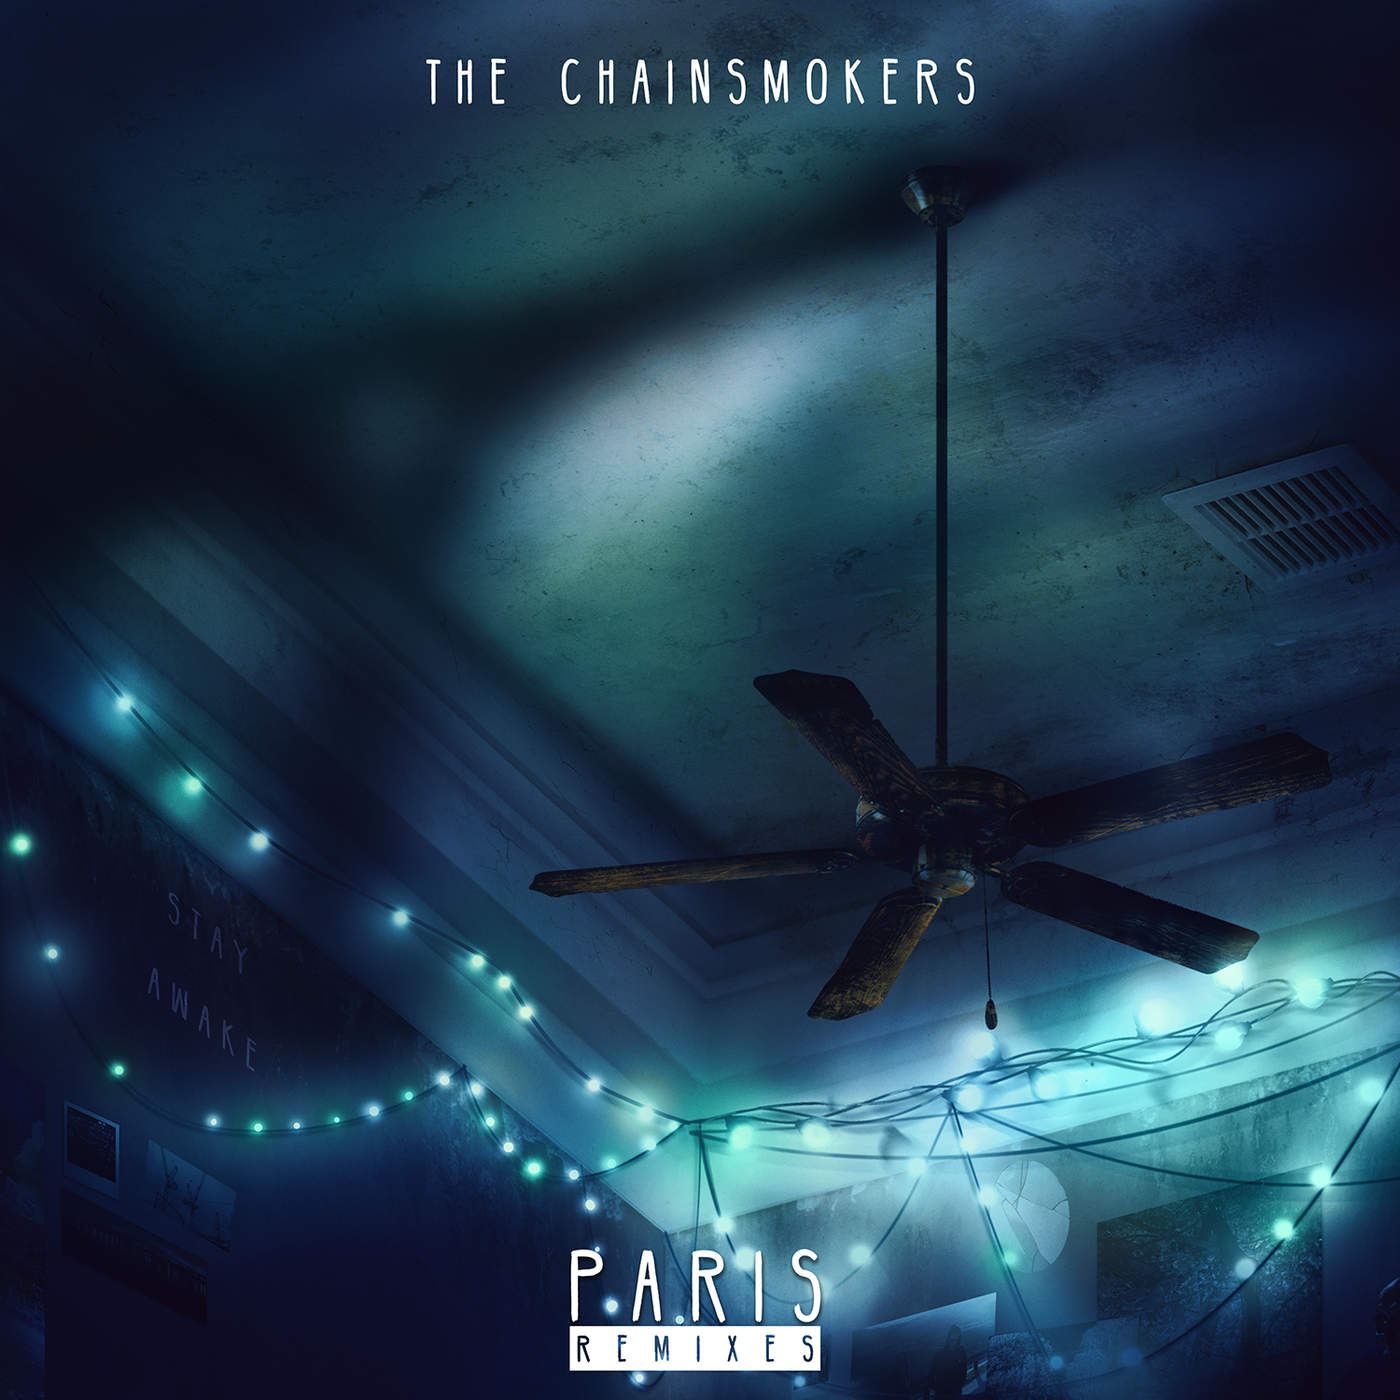 The Chainsmokers - Paris (Remixes) - EP Cover